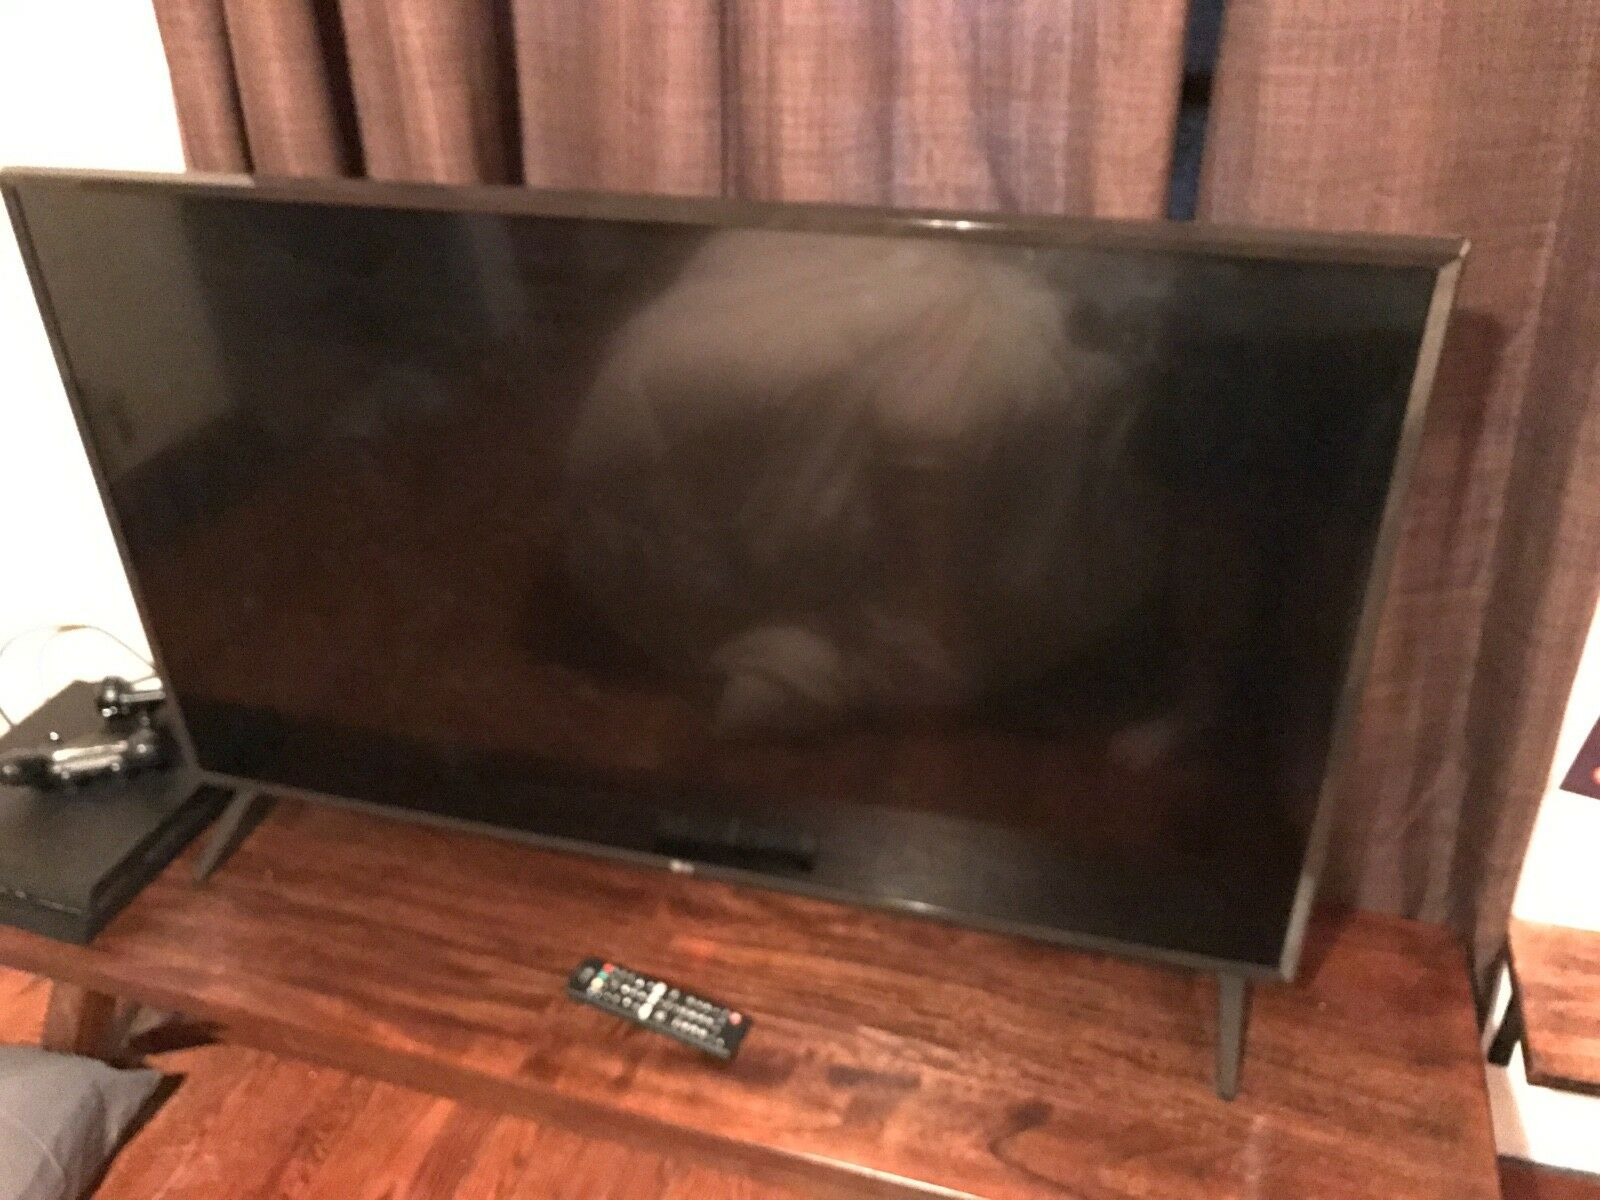 LG 55 inch TV. Available Now for 850.00